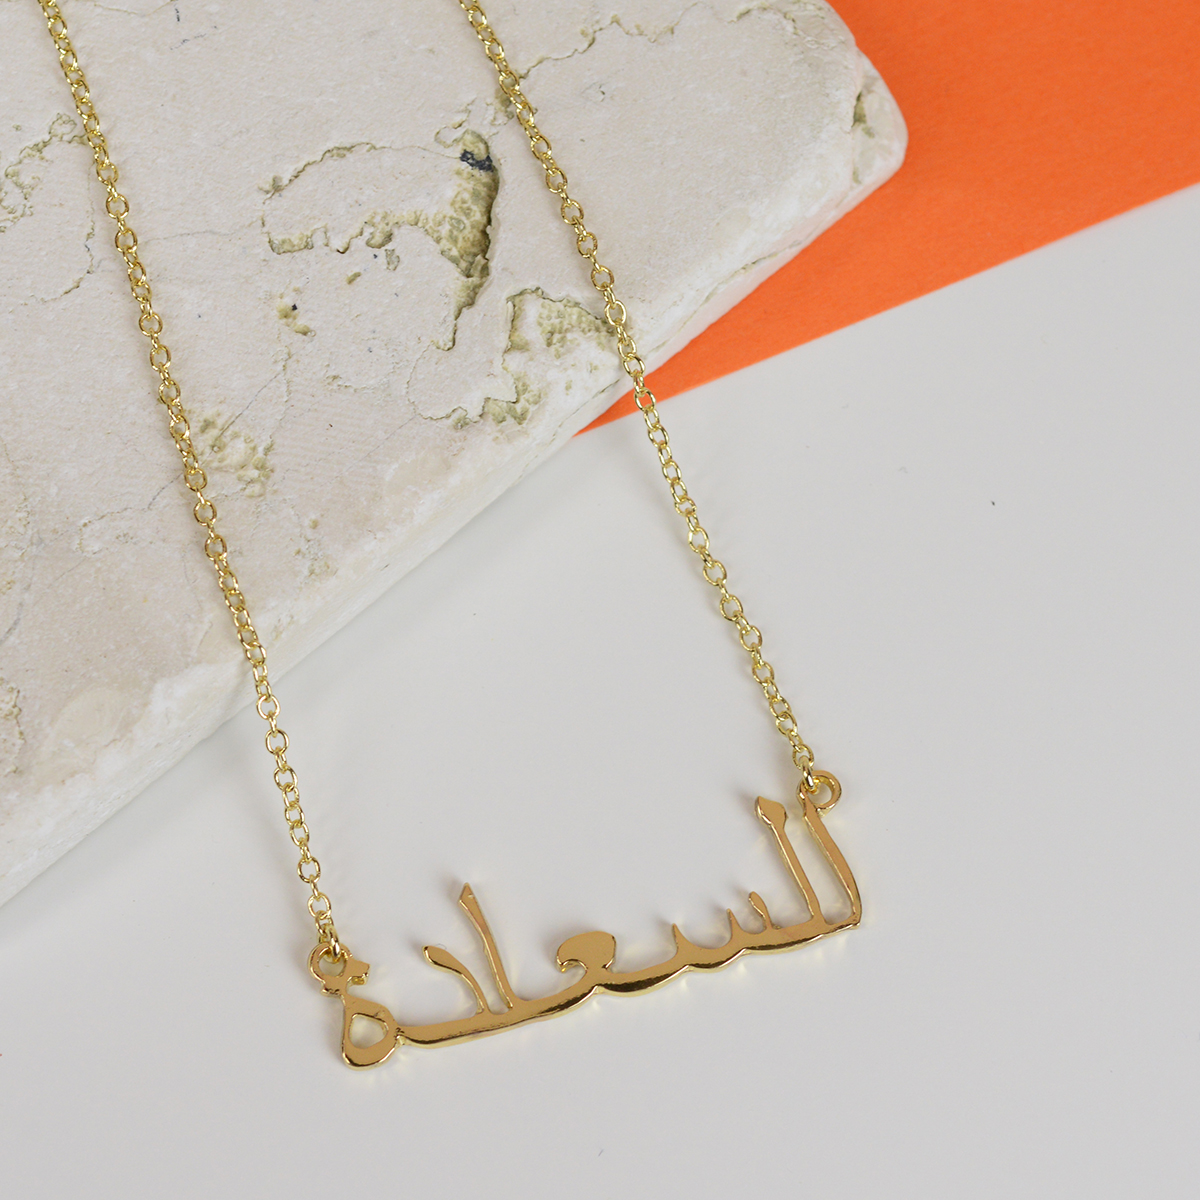 Happiness Arabic Necklace.